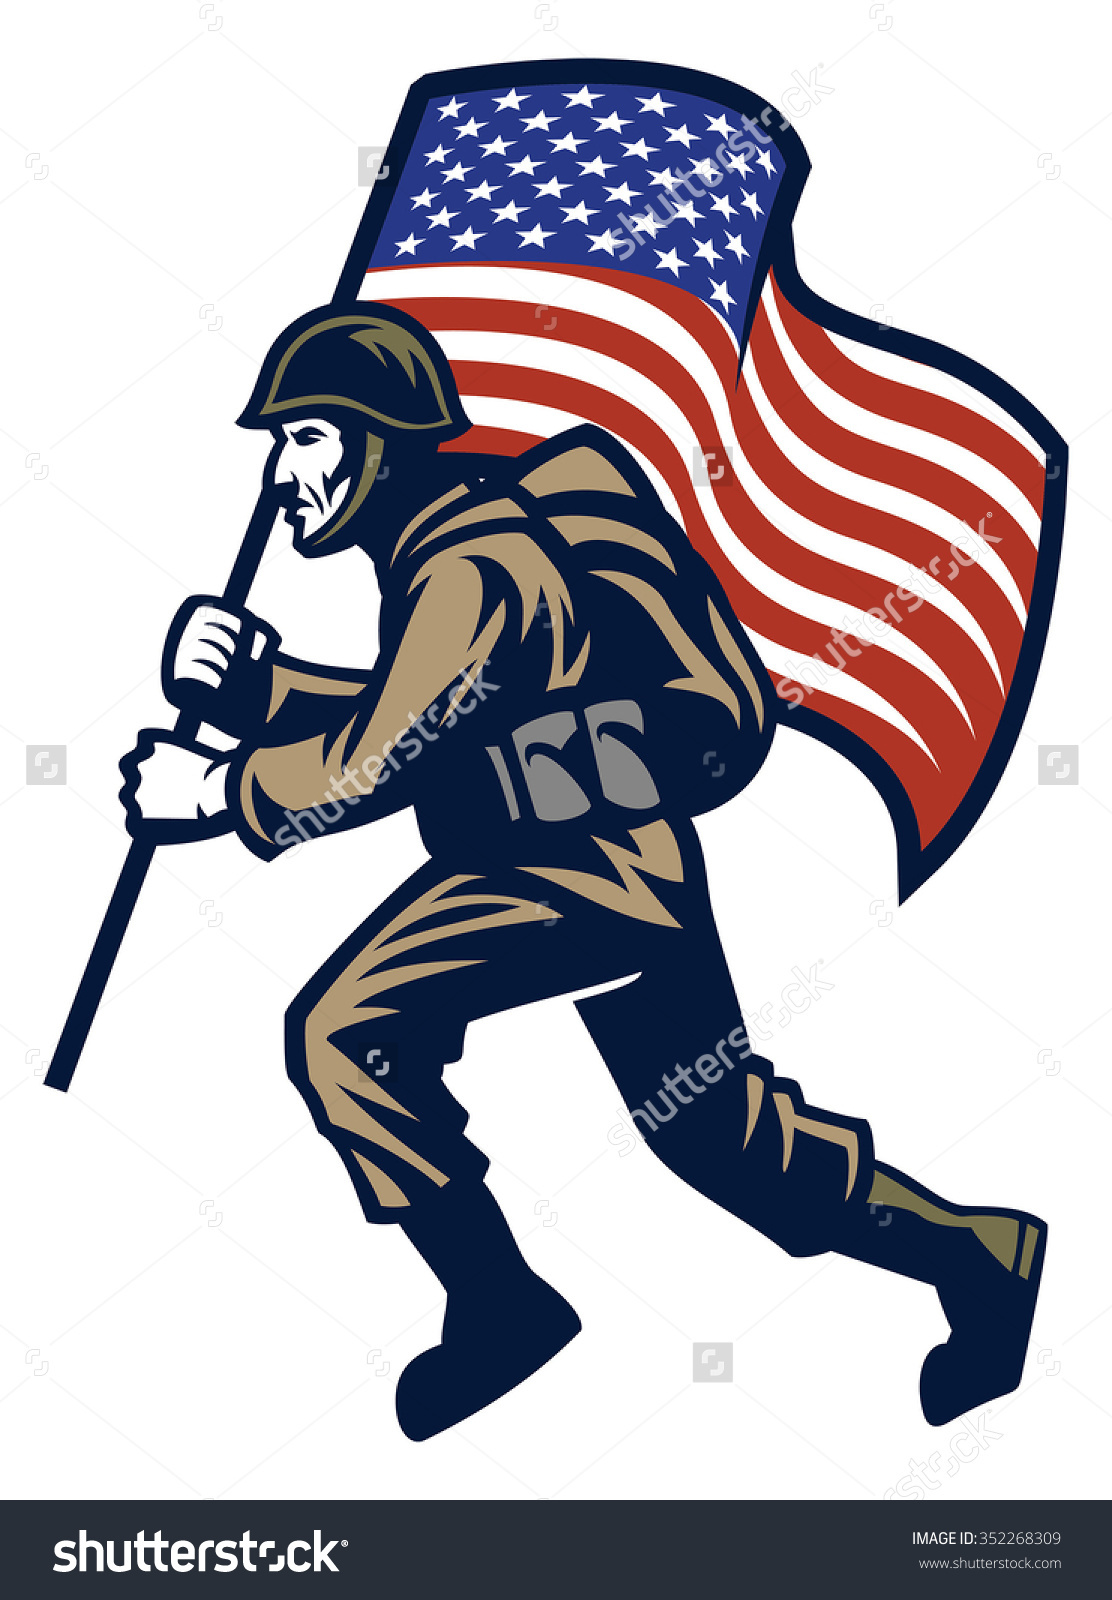 United states flag army clipart image Military Soldier Carrying United States Flag Stock Vector ... image